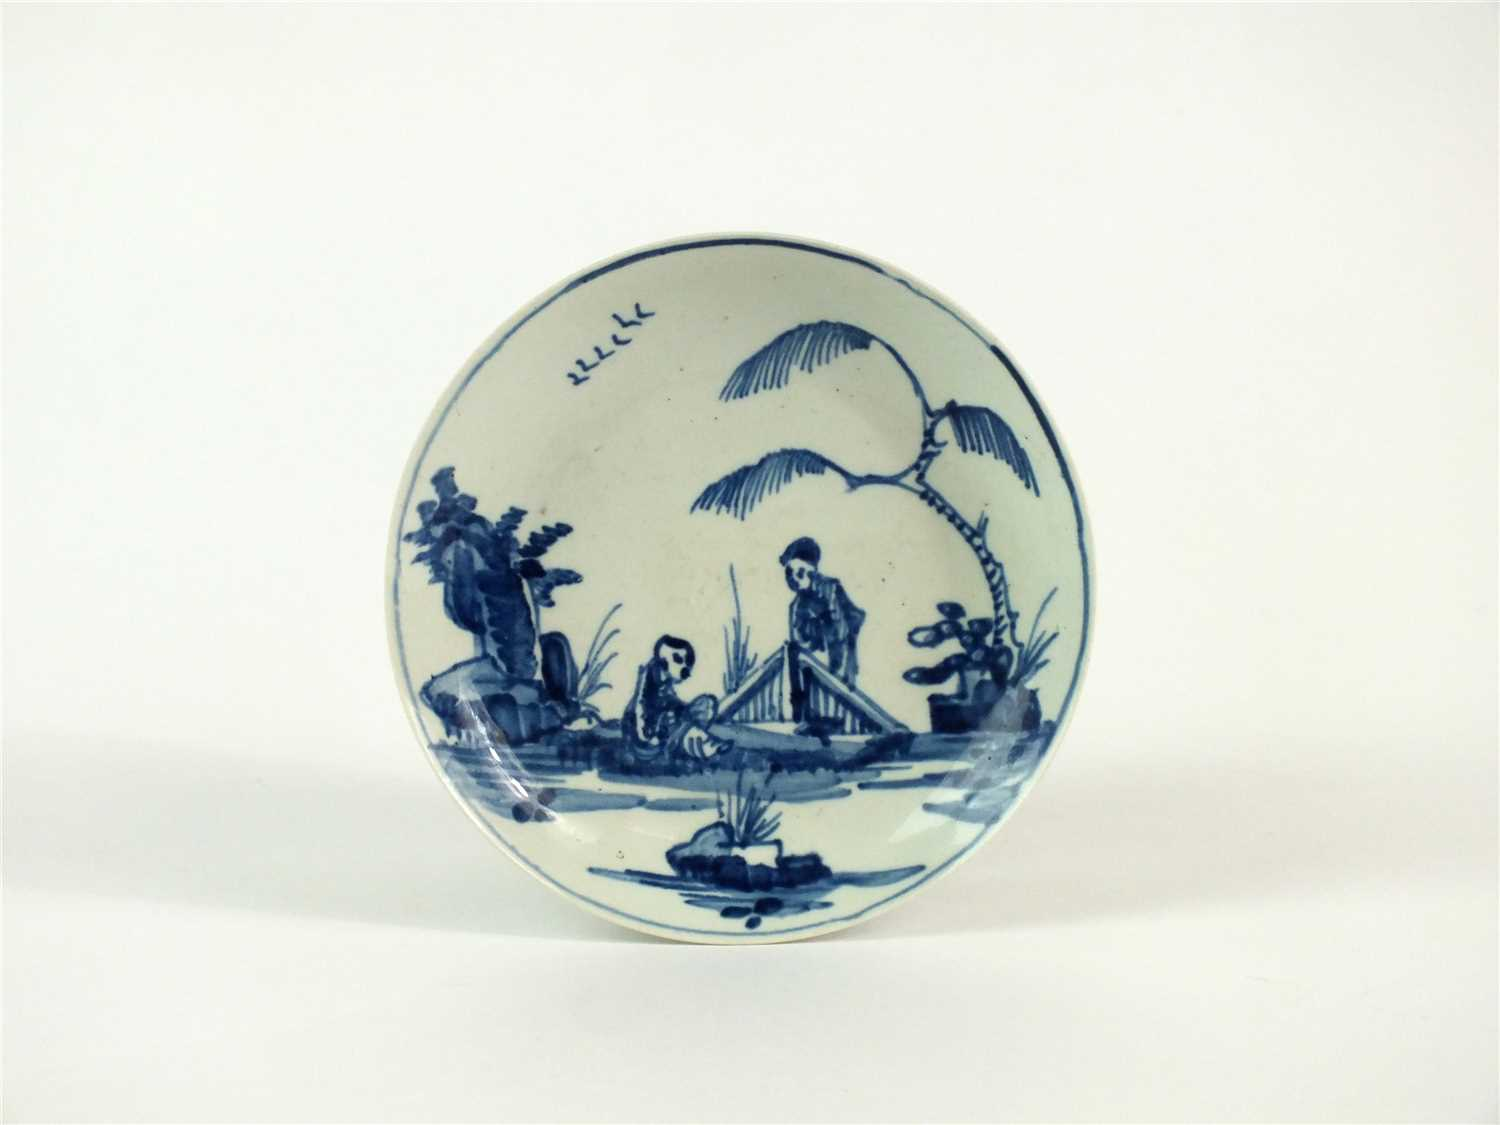 Lot 50-A Vauxhall porcelain blue and white saucer